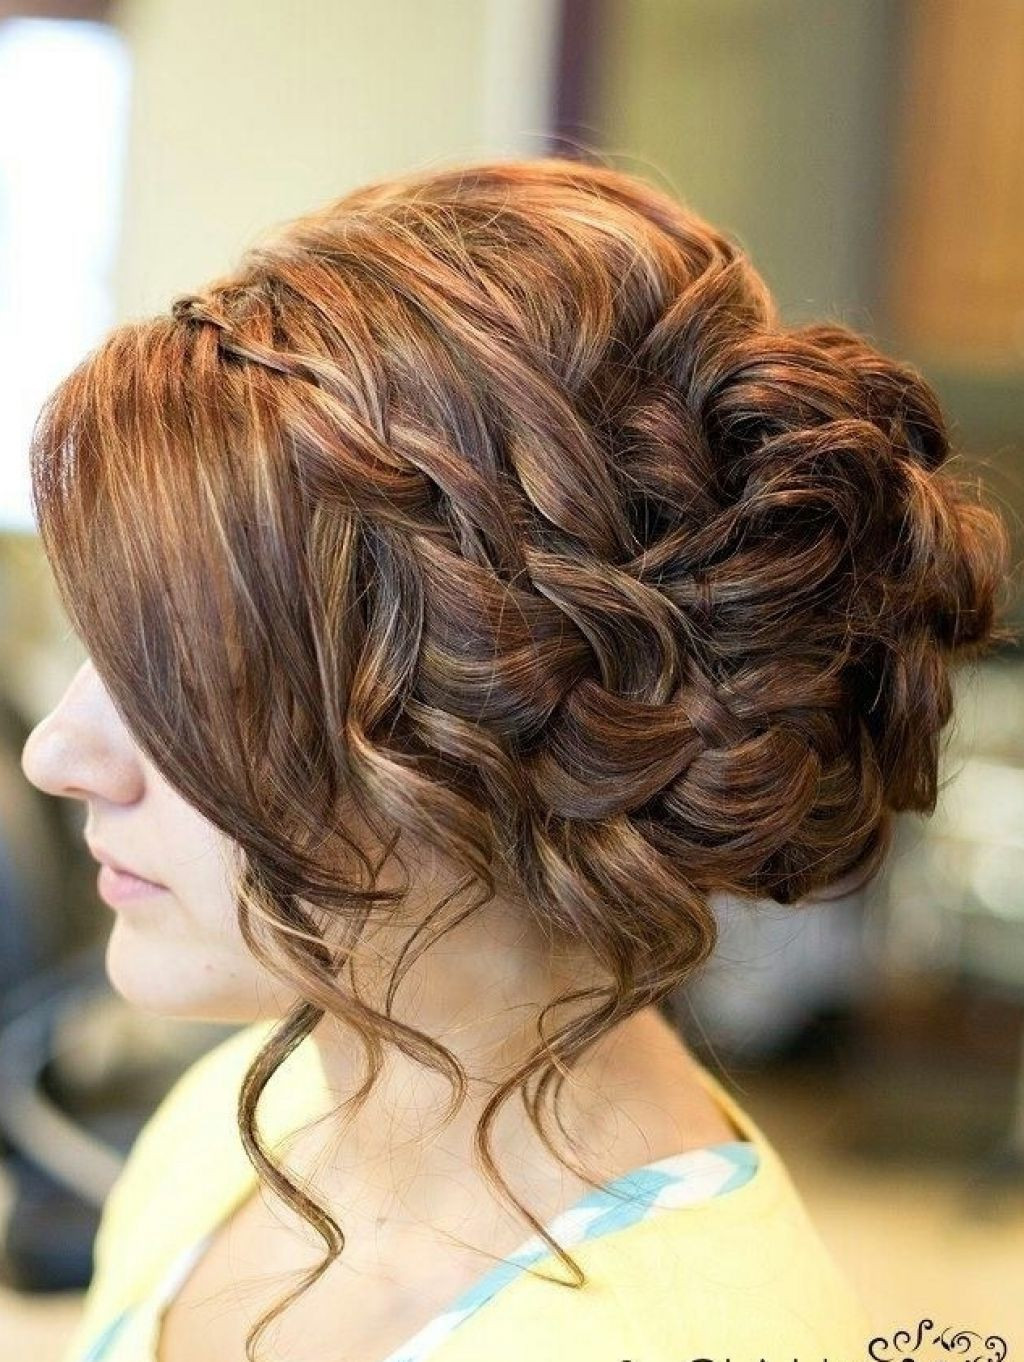 Hairstyles For Prom  14 Prom Hairstyles for Long Hair that are Simply Adorable